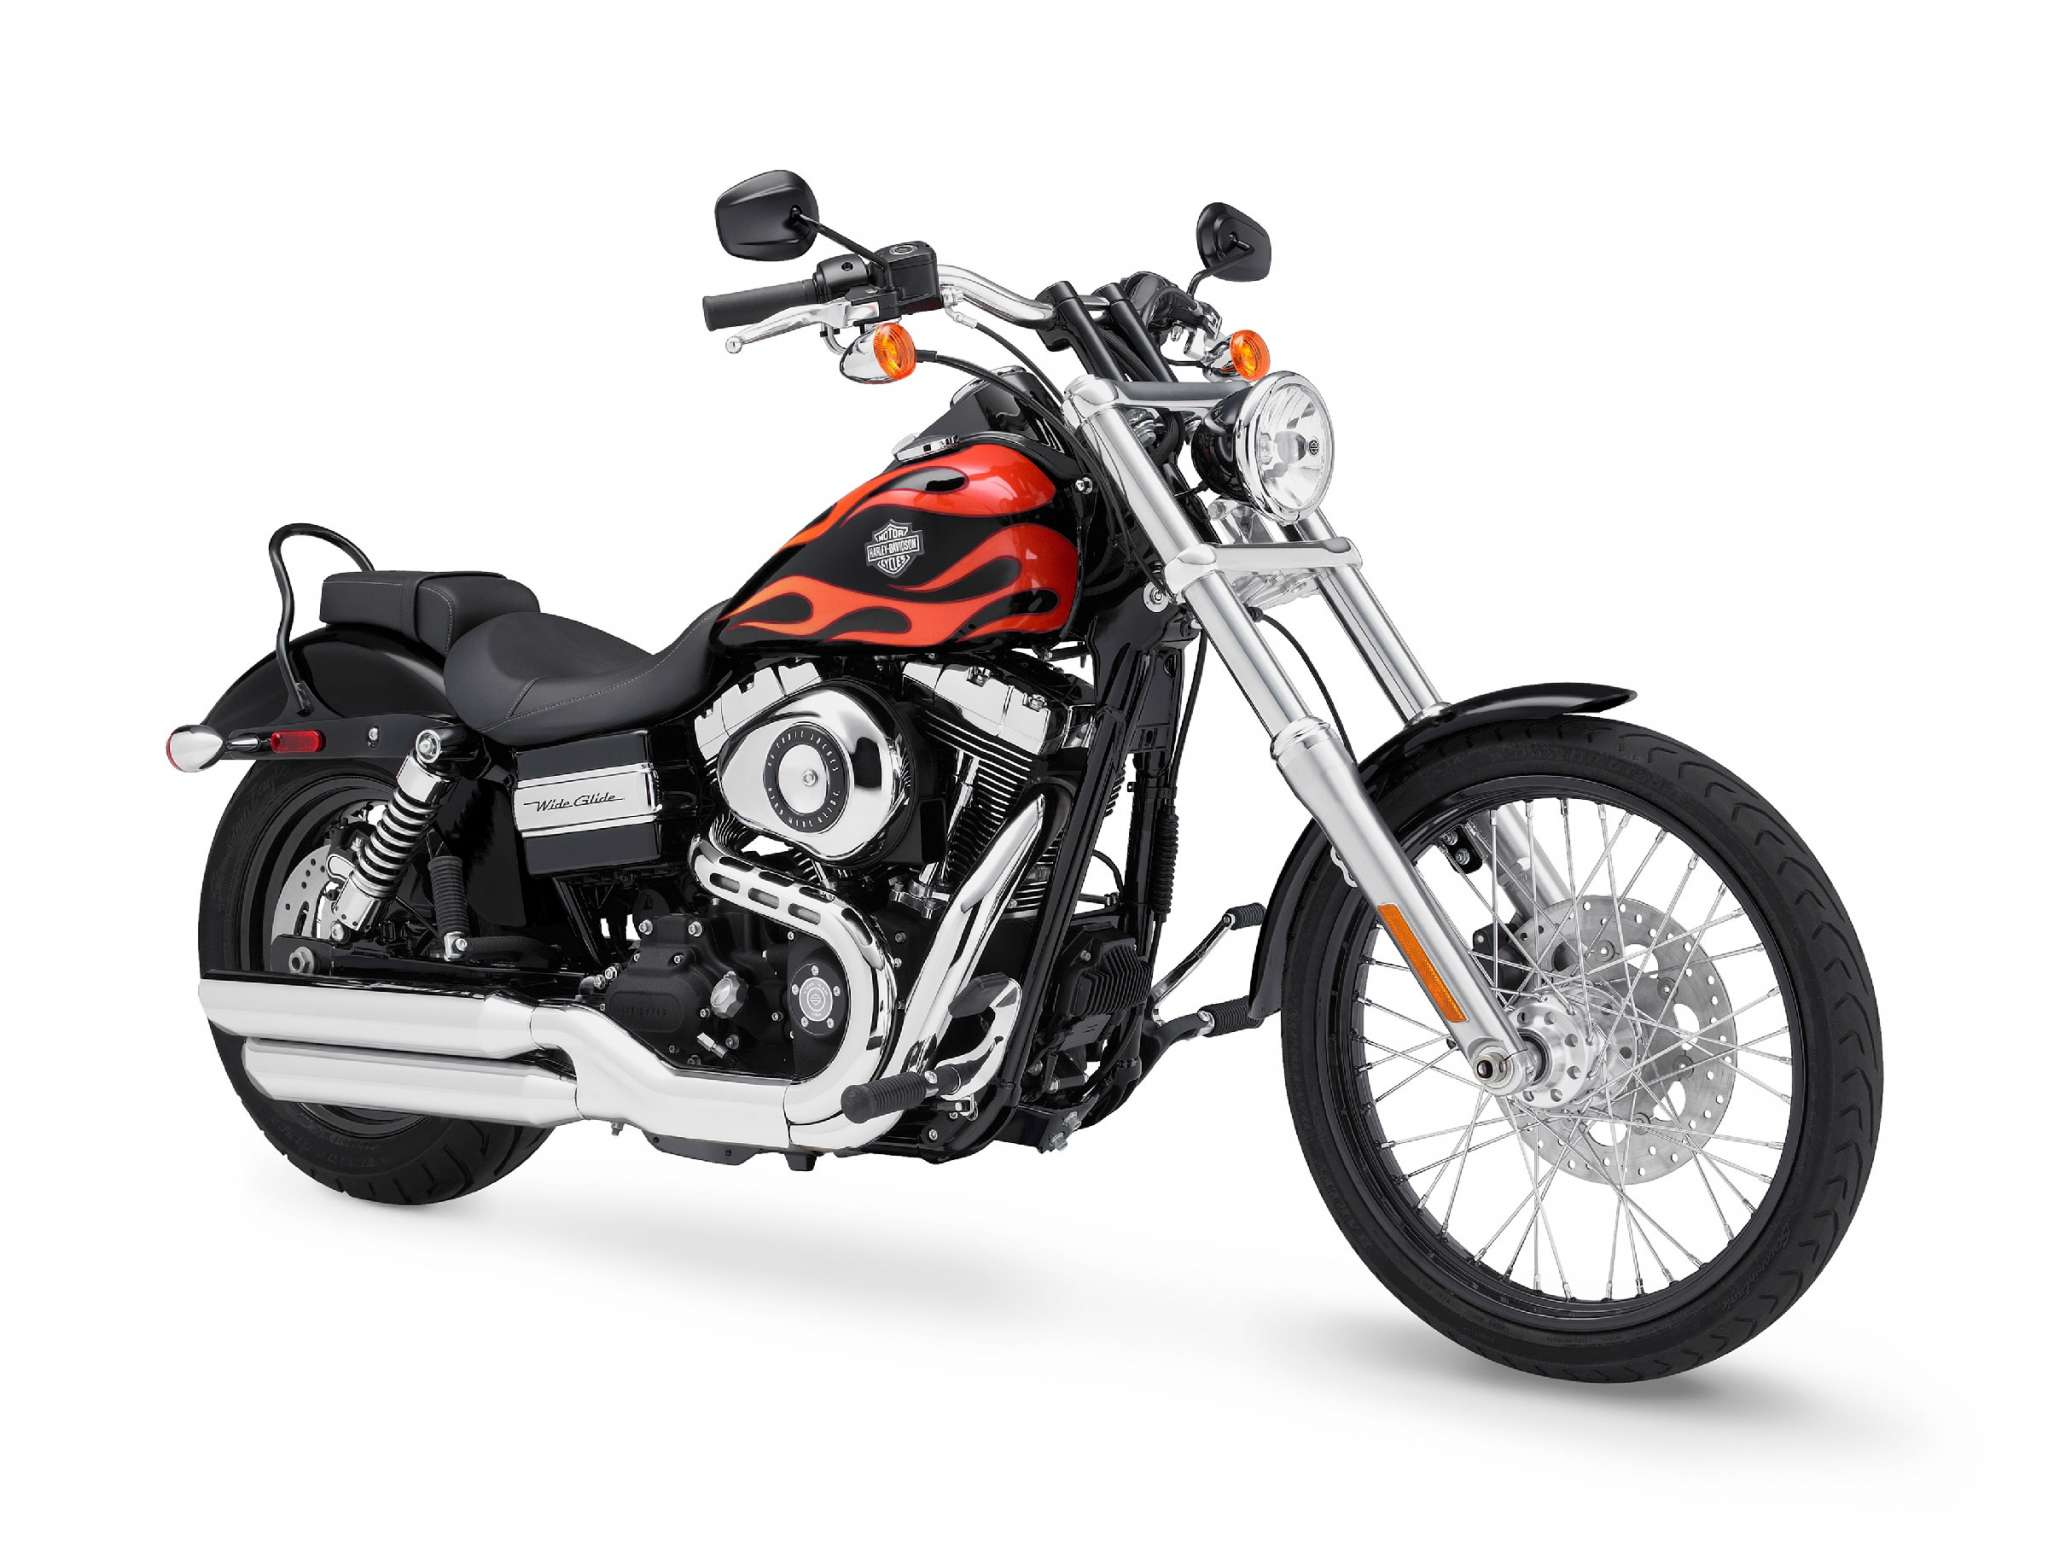 2010 harley davidson fxdwg dyna wide glide. Black Bedroom Furniture Sets. Home Design Ideas